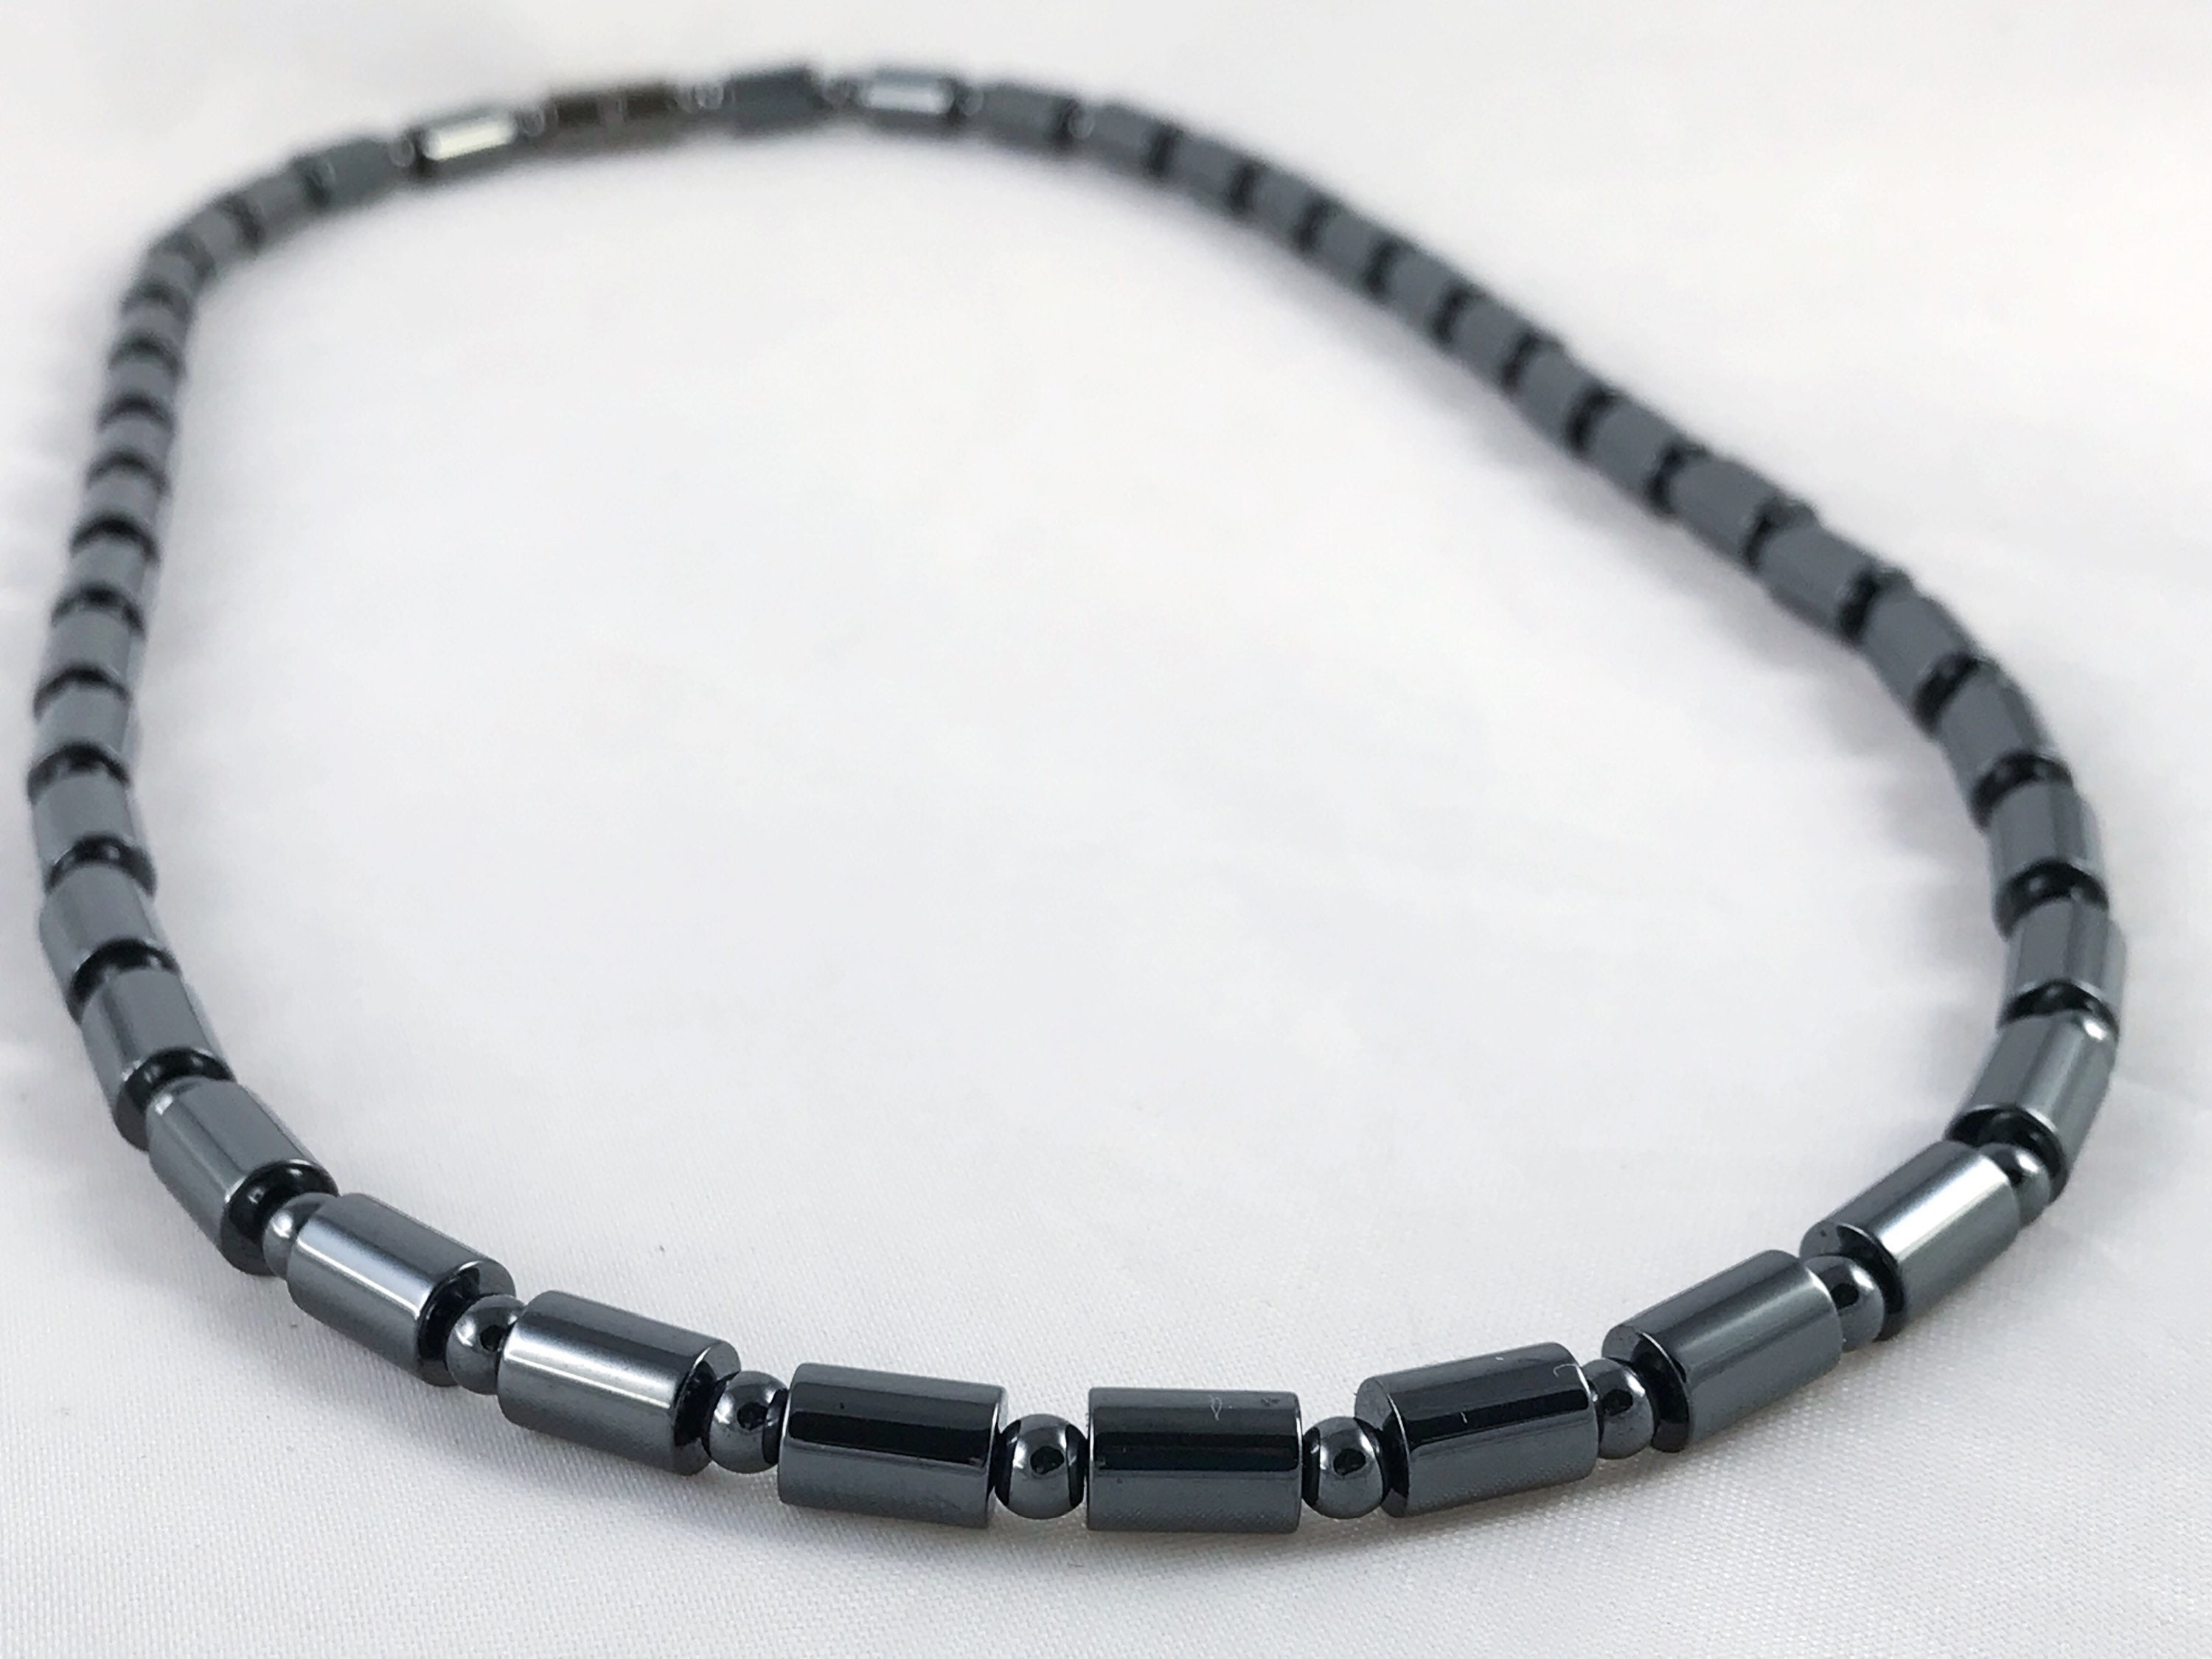 necklace fullxfull listing smooth jewellery beads women hematite sized unisex magnetic custom mtoi il jewelry cylinder s men